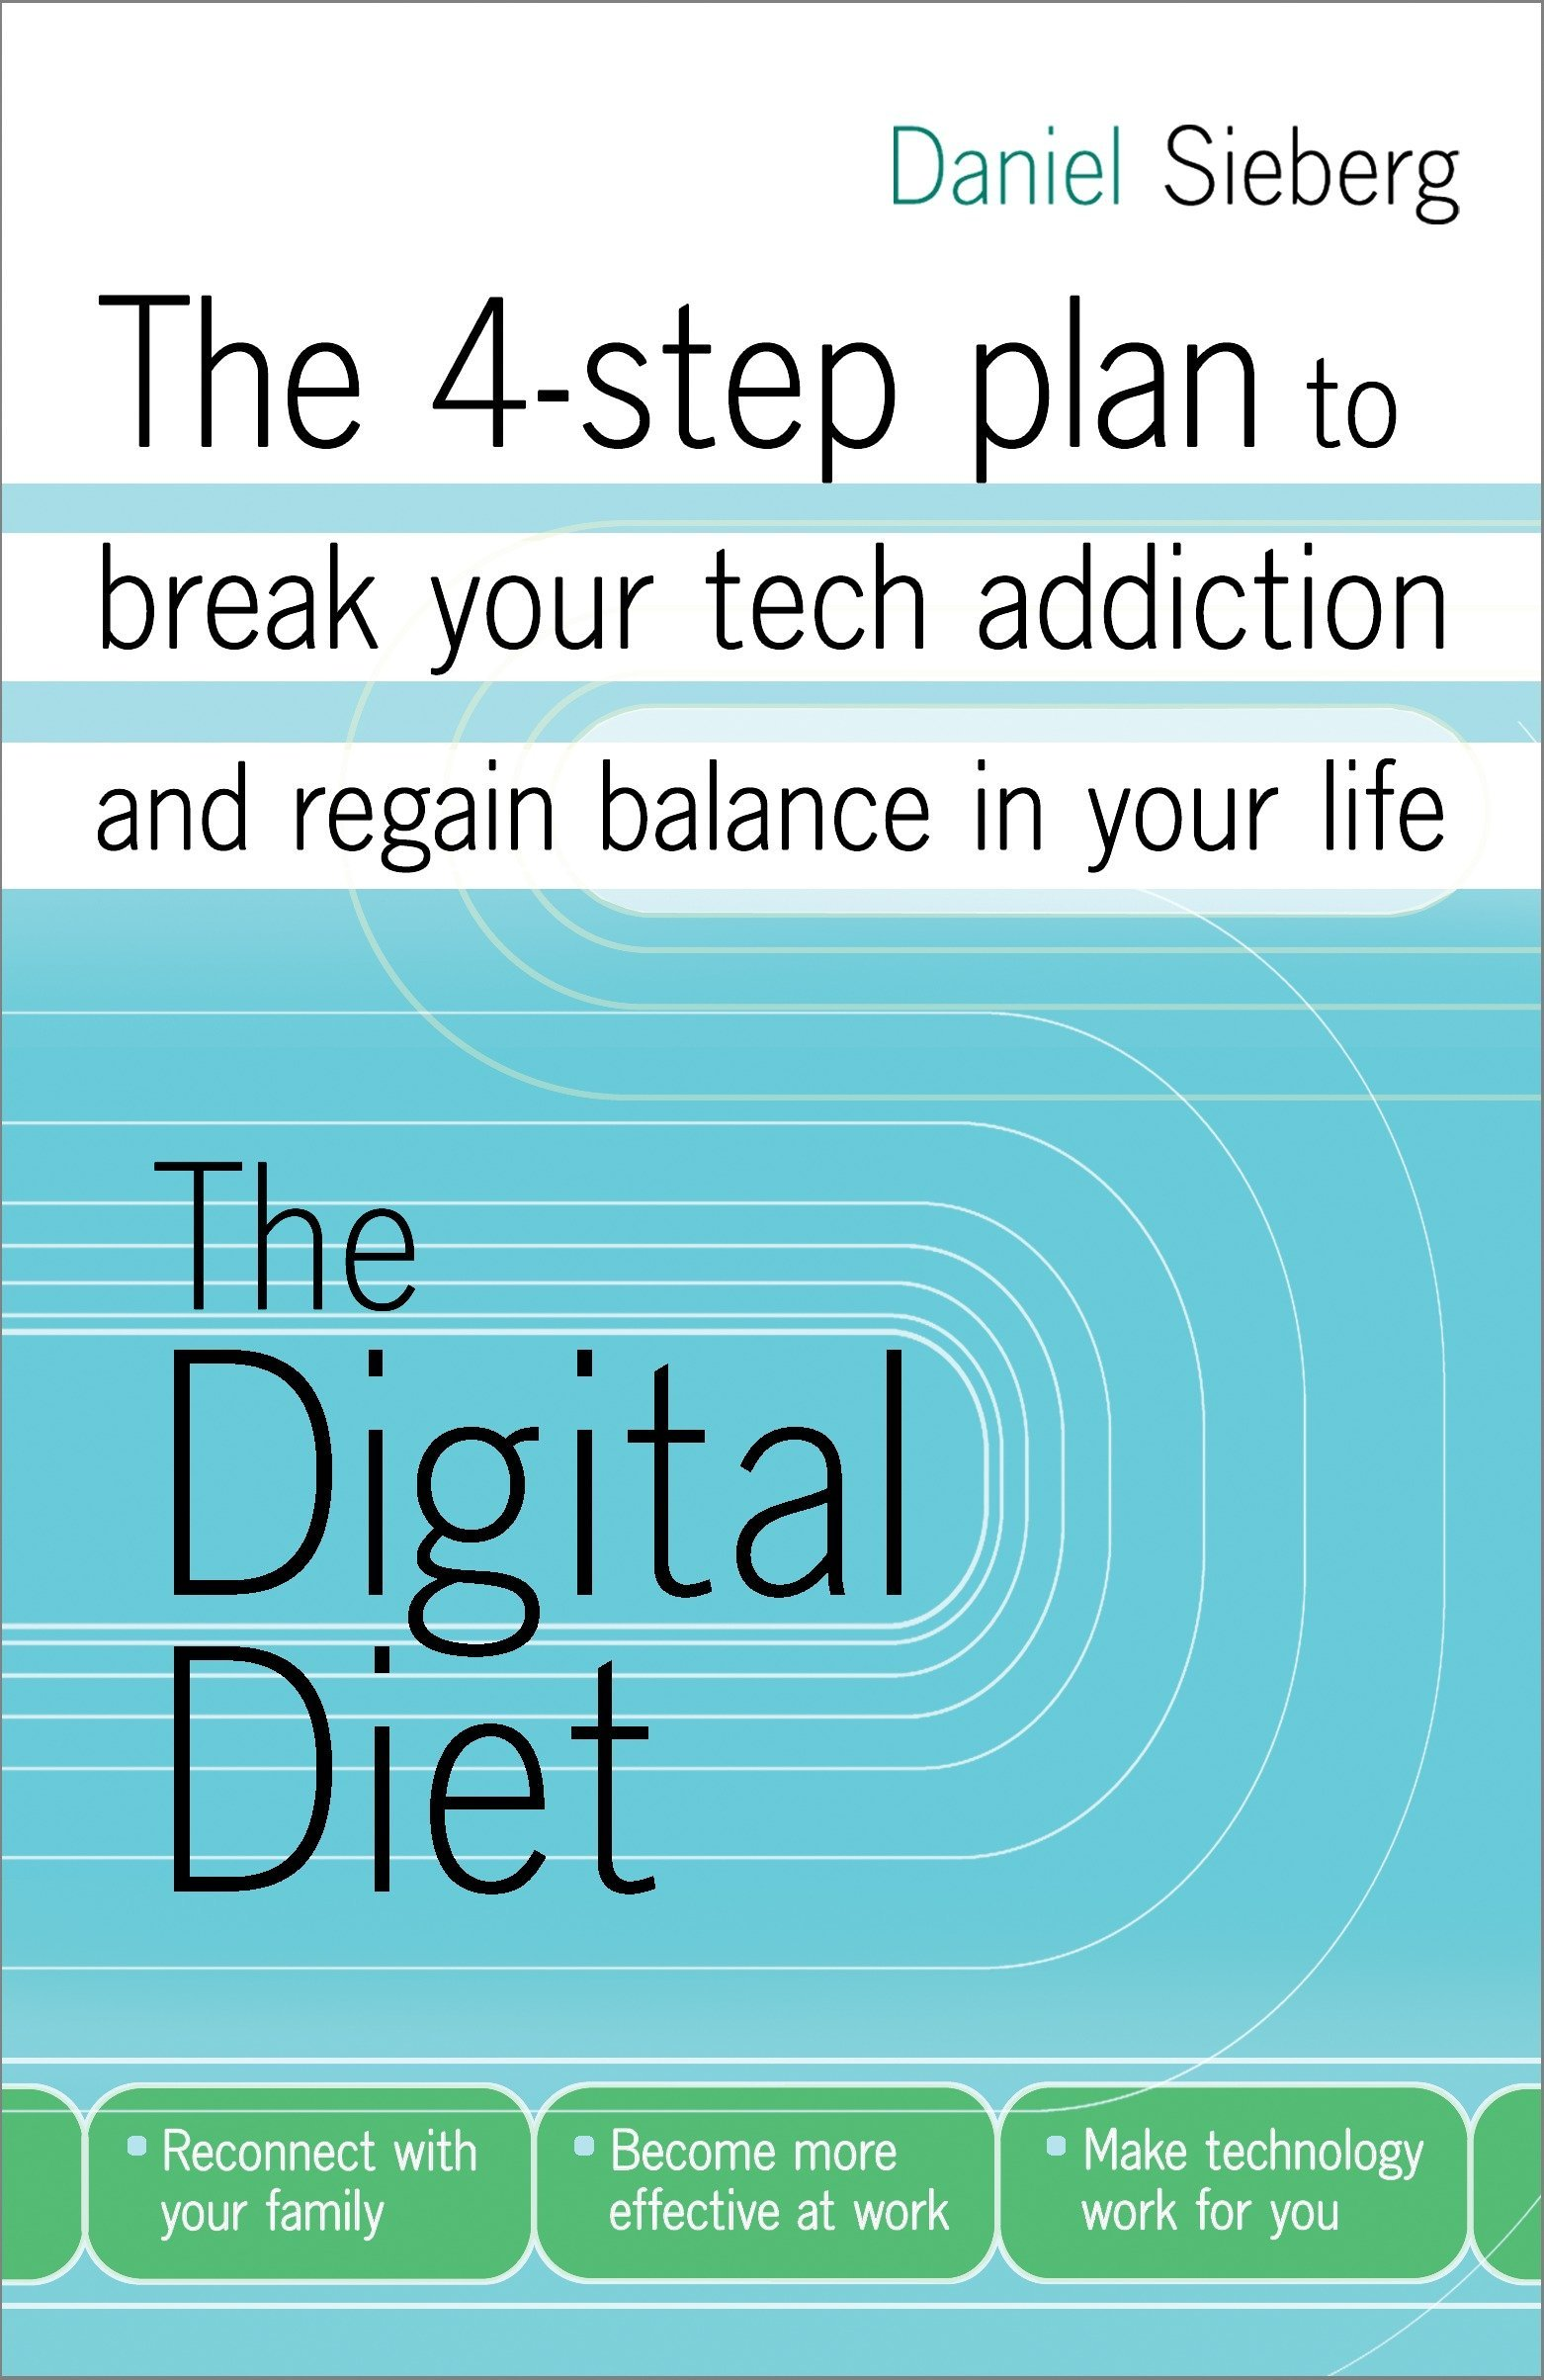 The Digital Diet: The 4-step plan to break your tech addiction and regain balance in your life ebook